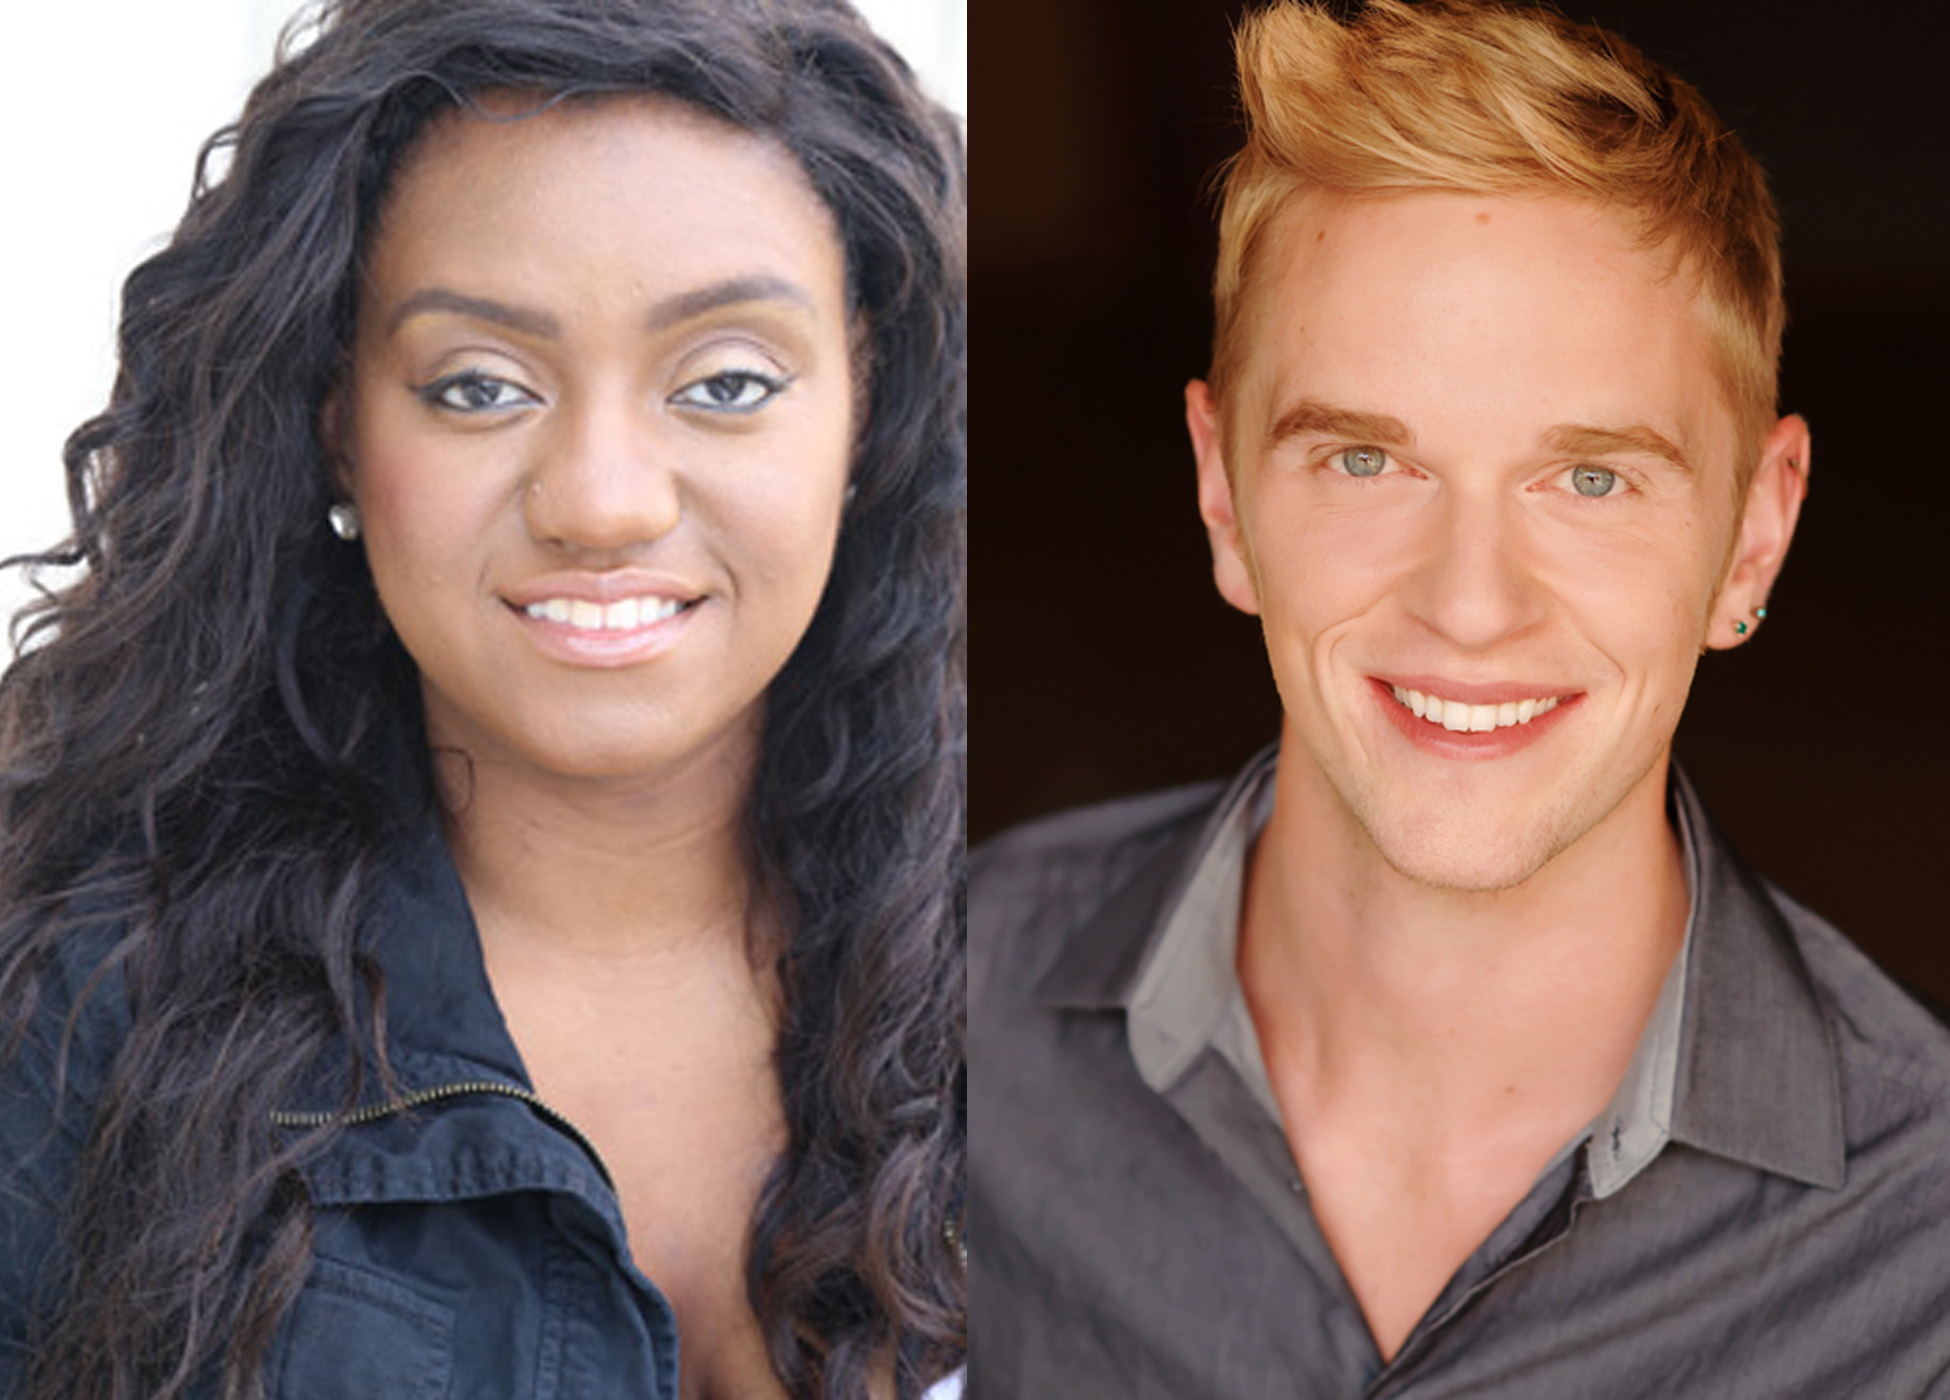 Raven Dockery and Ryan Cappleman. Photo courtesy of the Skylight Music Theatre via the Calendar.